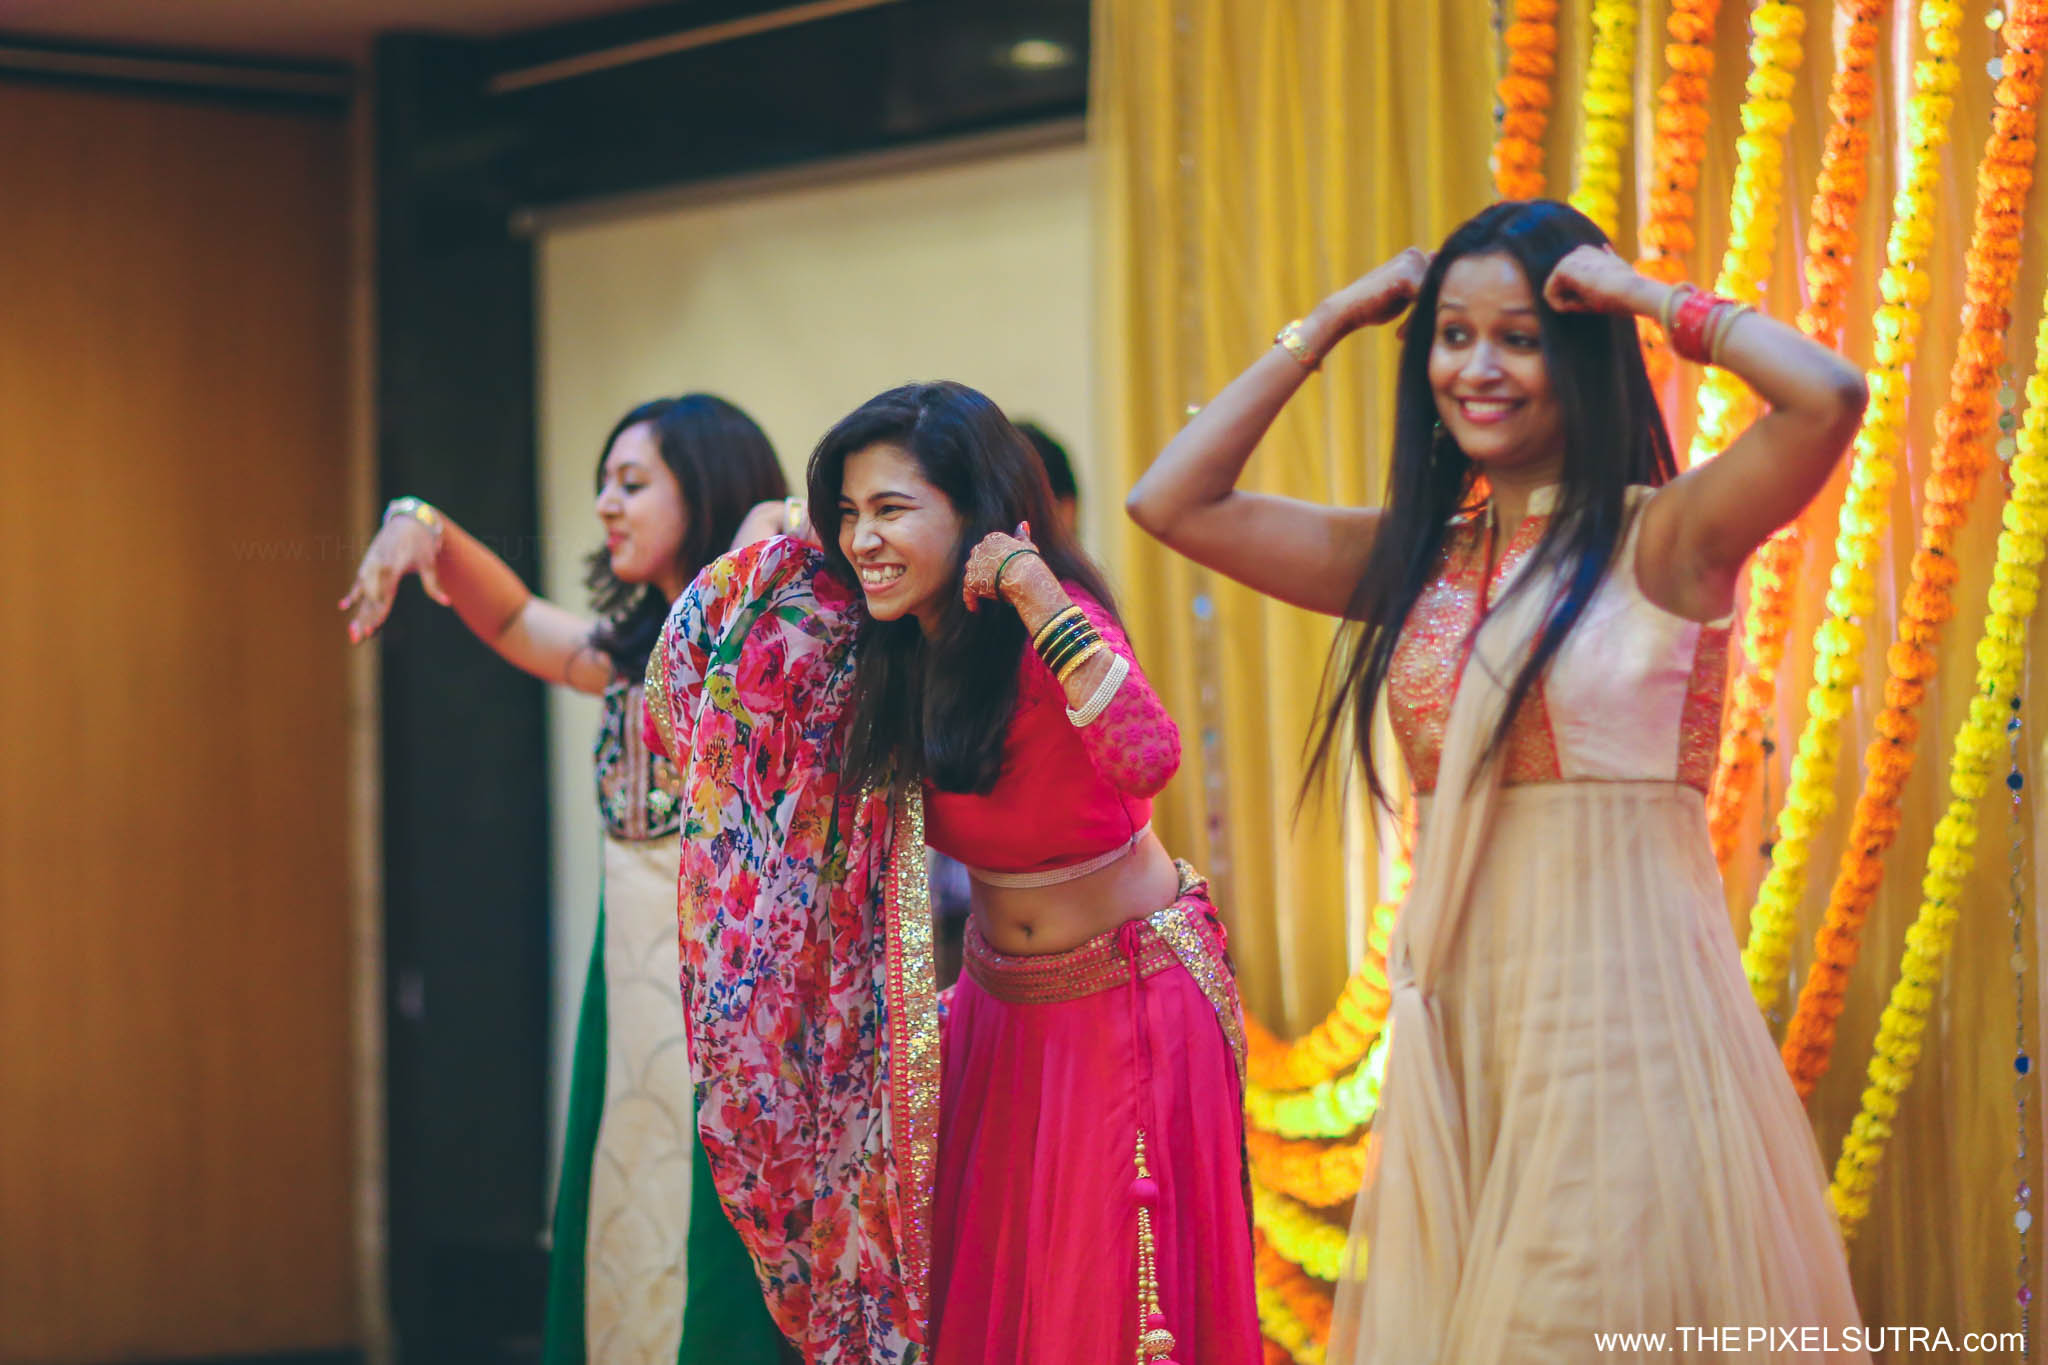 The Pixel Sutra Nachiket x Priyanka Candid Wedding photographer Mumbai Best  (6).jpg